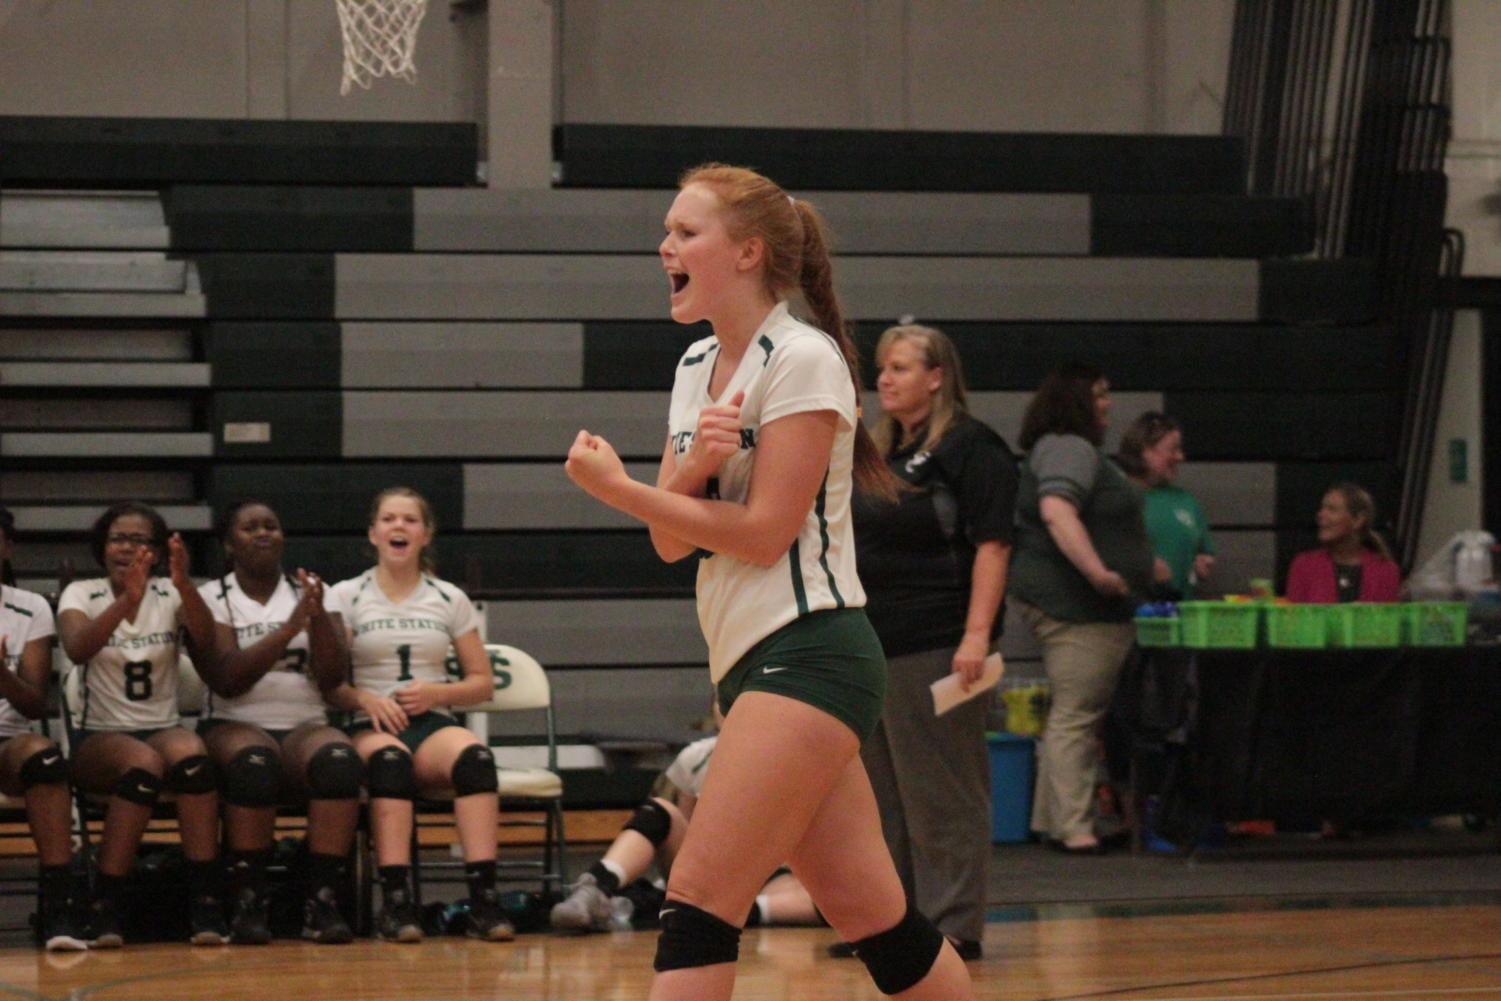 To celebrate scoring a point during a tight match, Gigi Ford (12) cheers on her volleyball team who took the fourth set, winning the overall game.